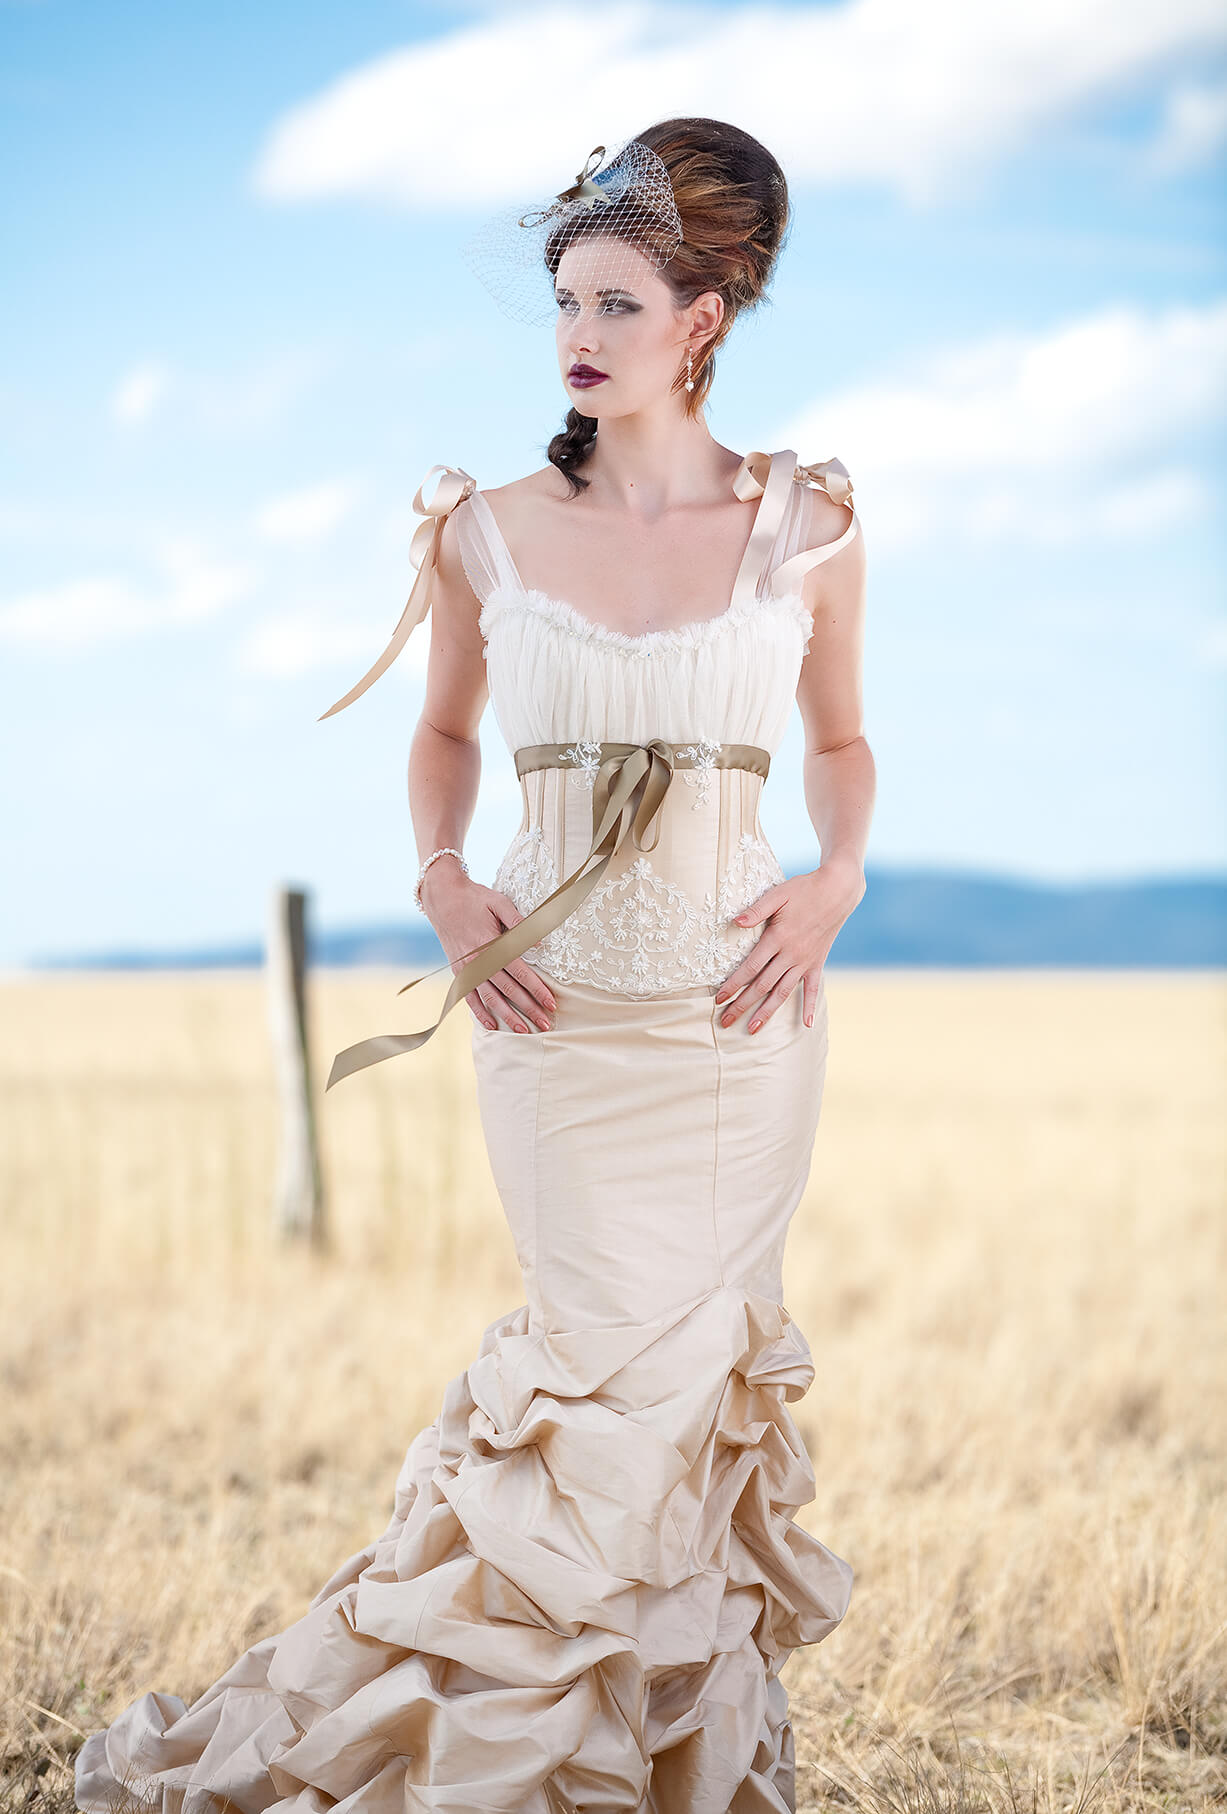 Bridal fashion shoot, bridal gown advertising photography